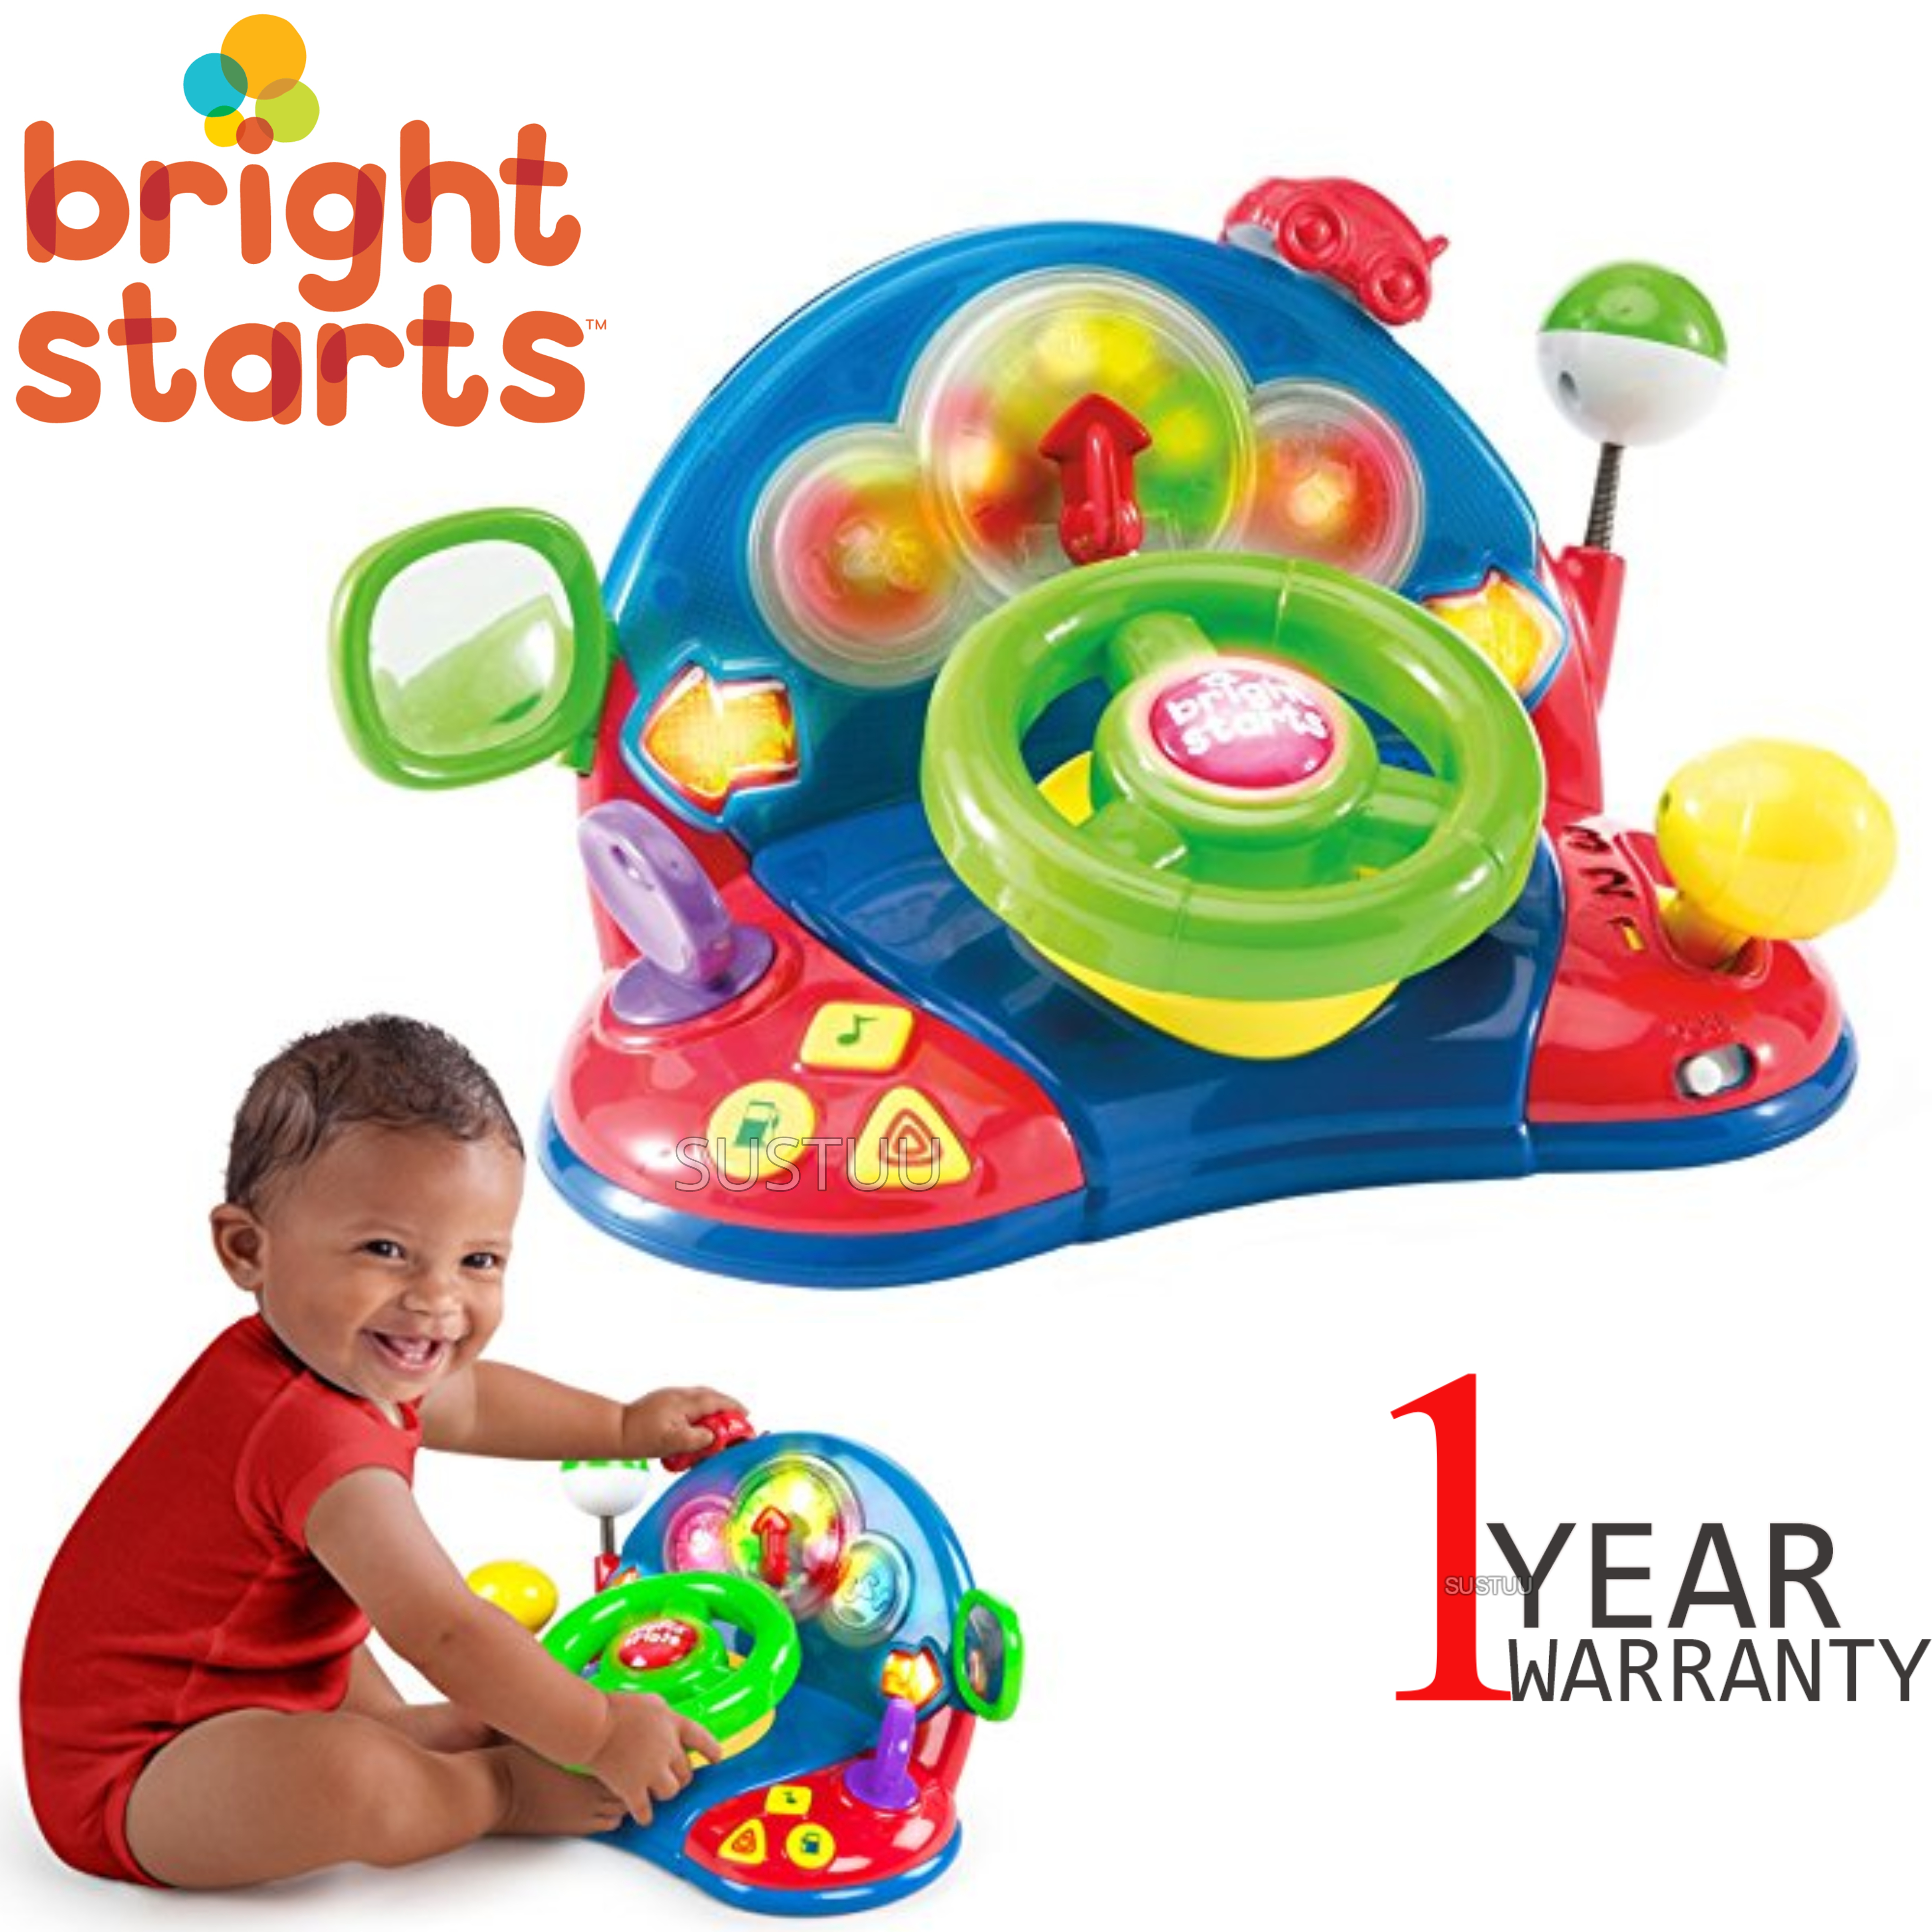 Bright Starts Lights & Colours Driver | Baby/Kids Learning Activity Toy With Music